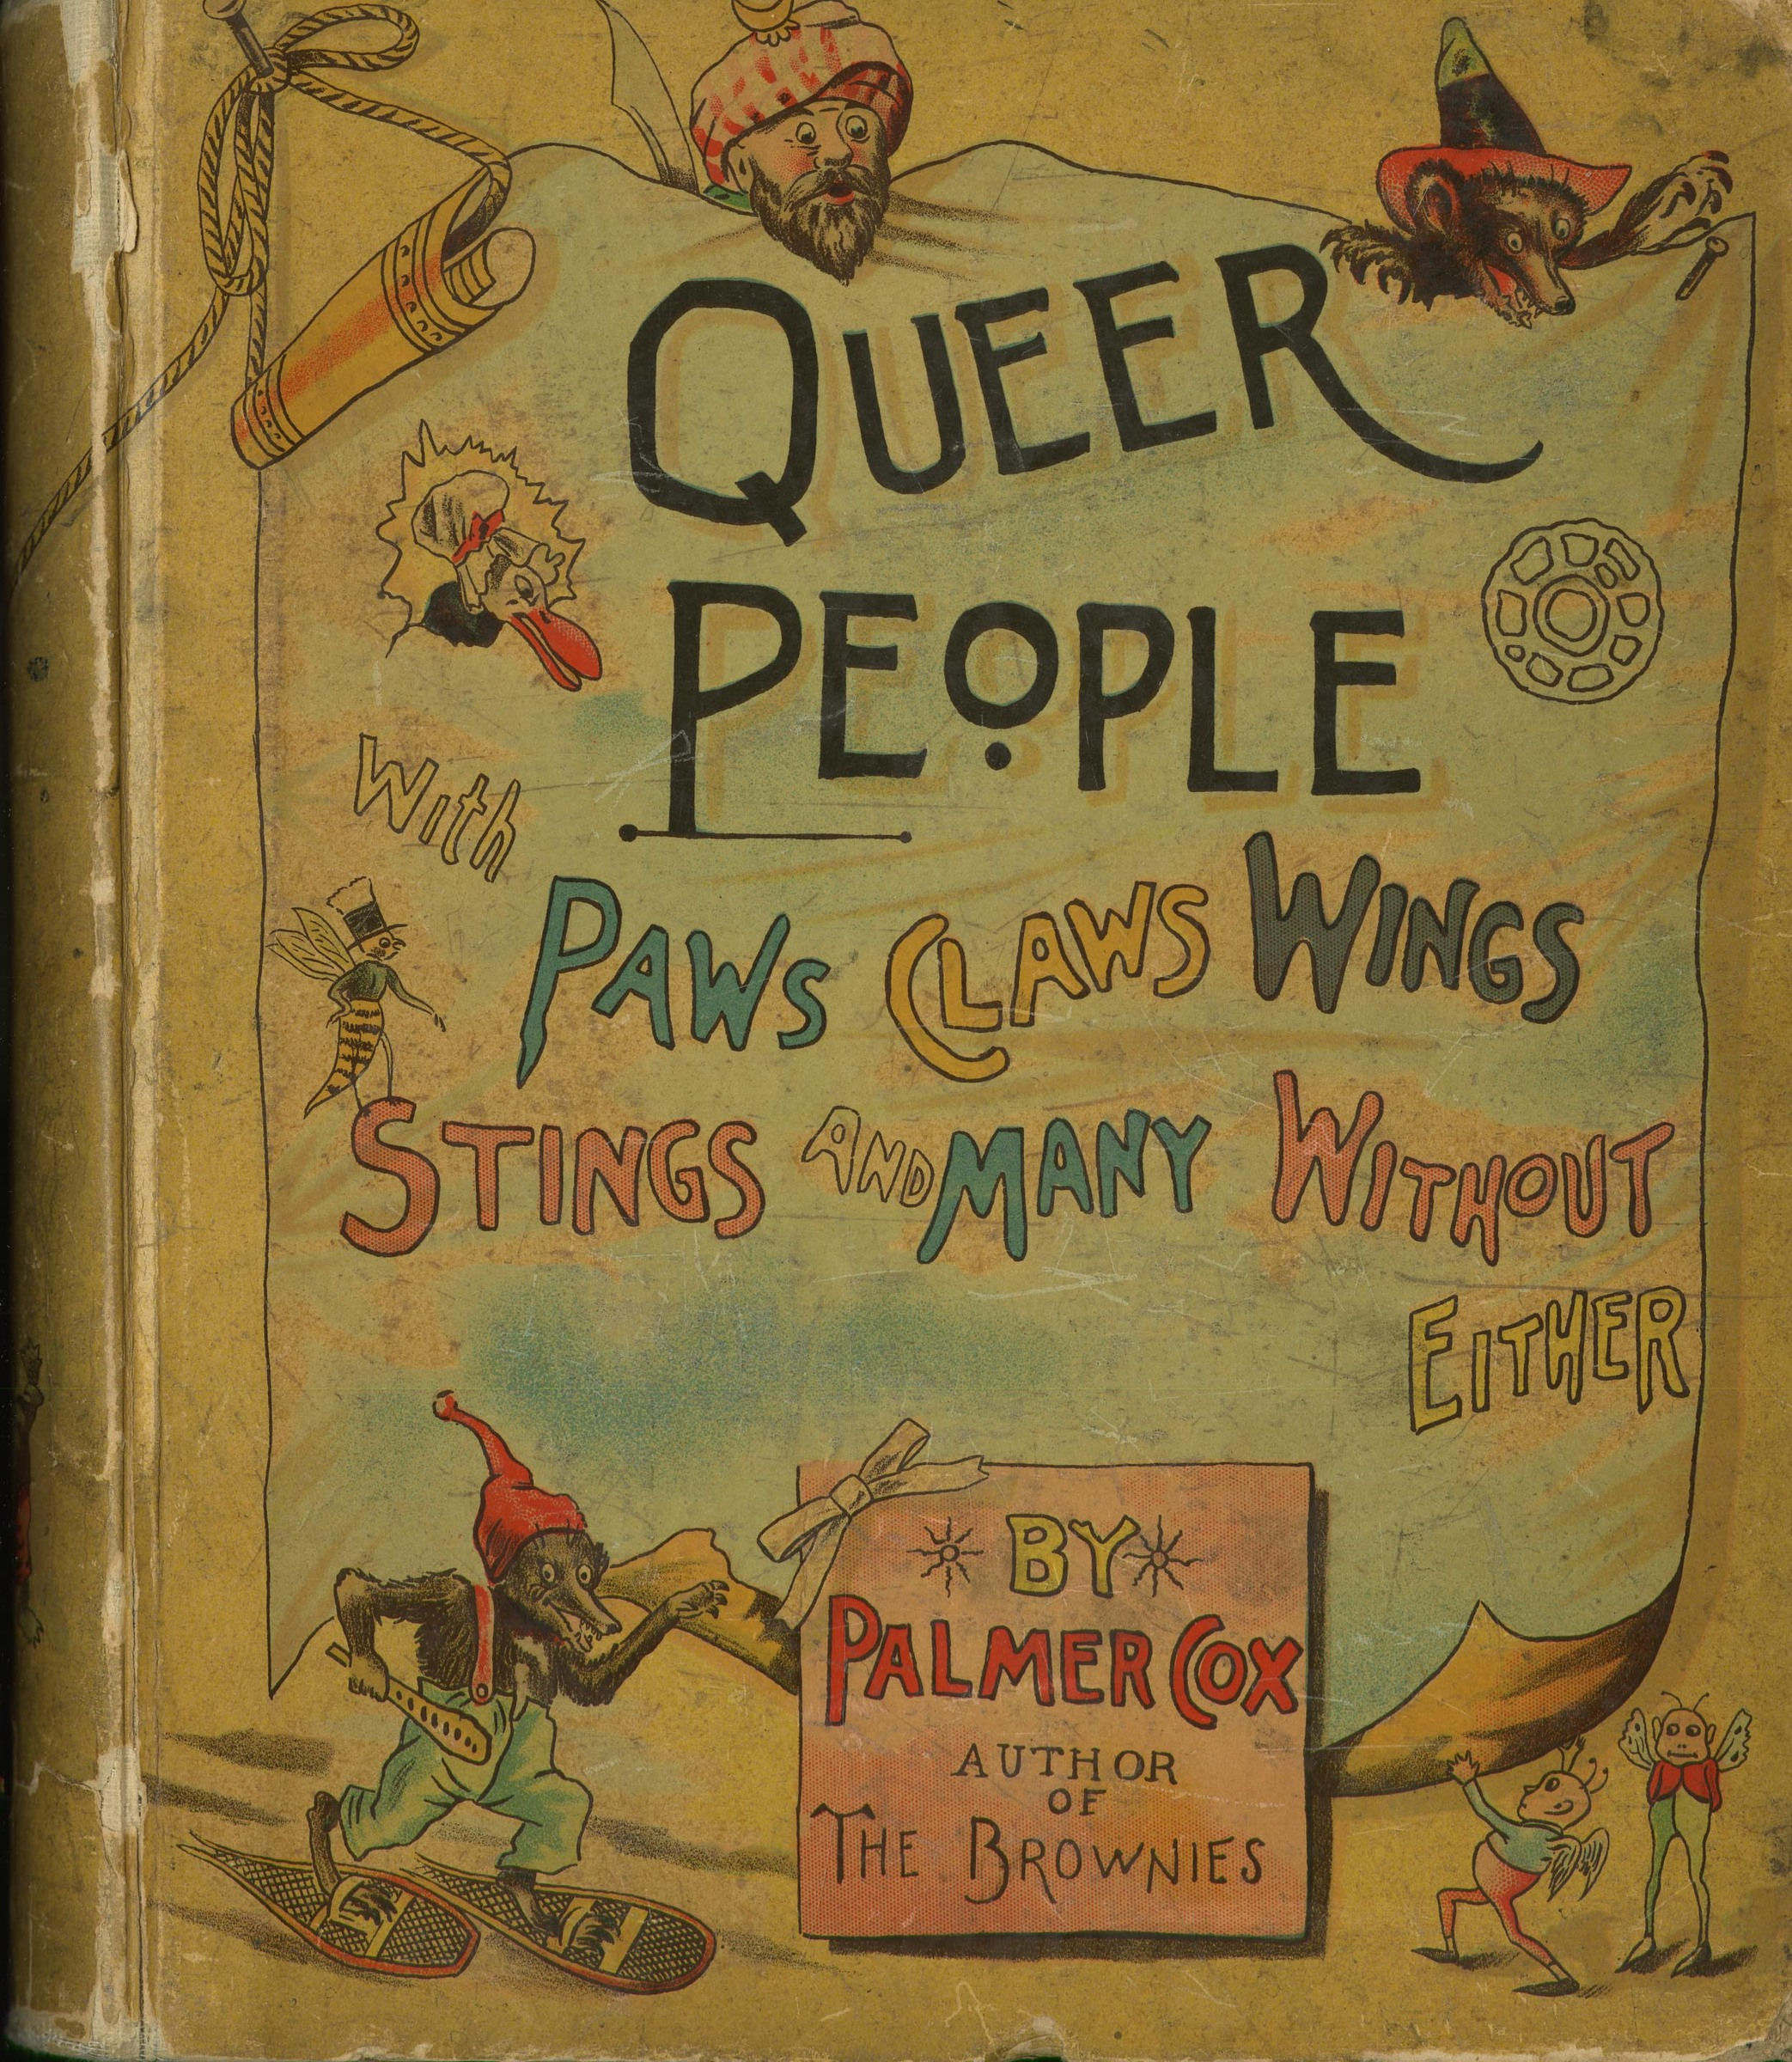 Queer People with Paws, Claws, Wings, Stings, and Many Without Either